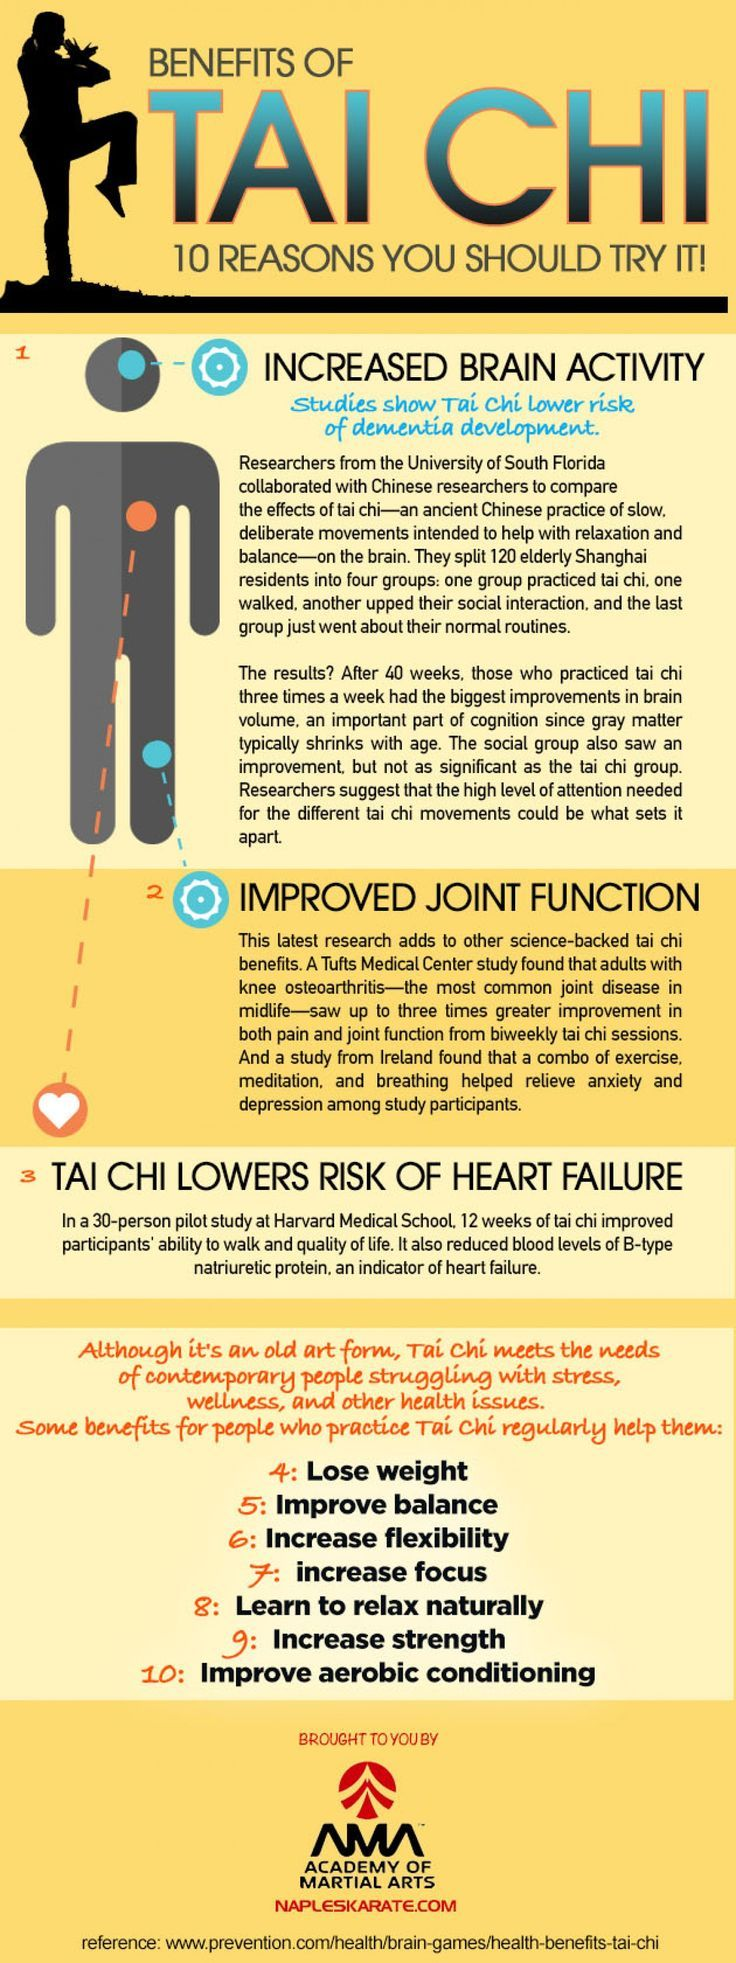 Benefits of Tai Chi -Beginners guide to using tai chi for fitness. #exercise #health #wellness